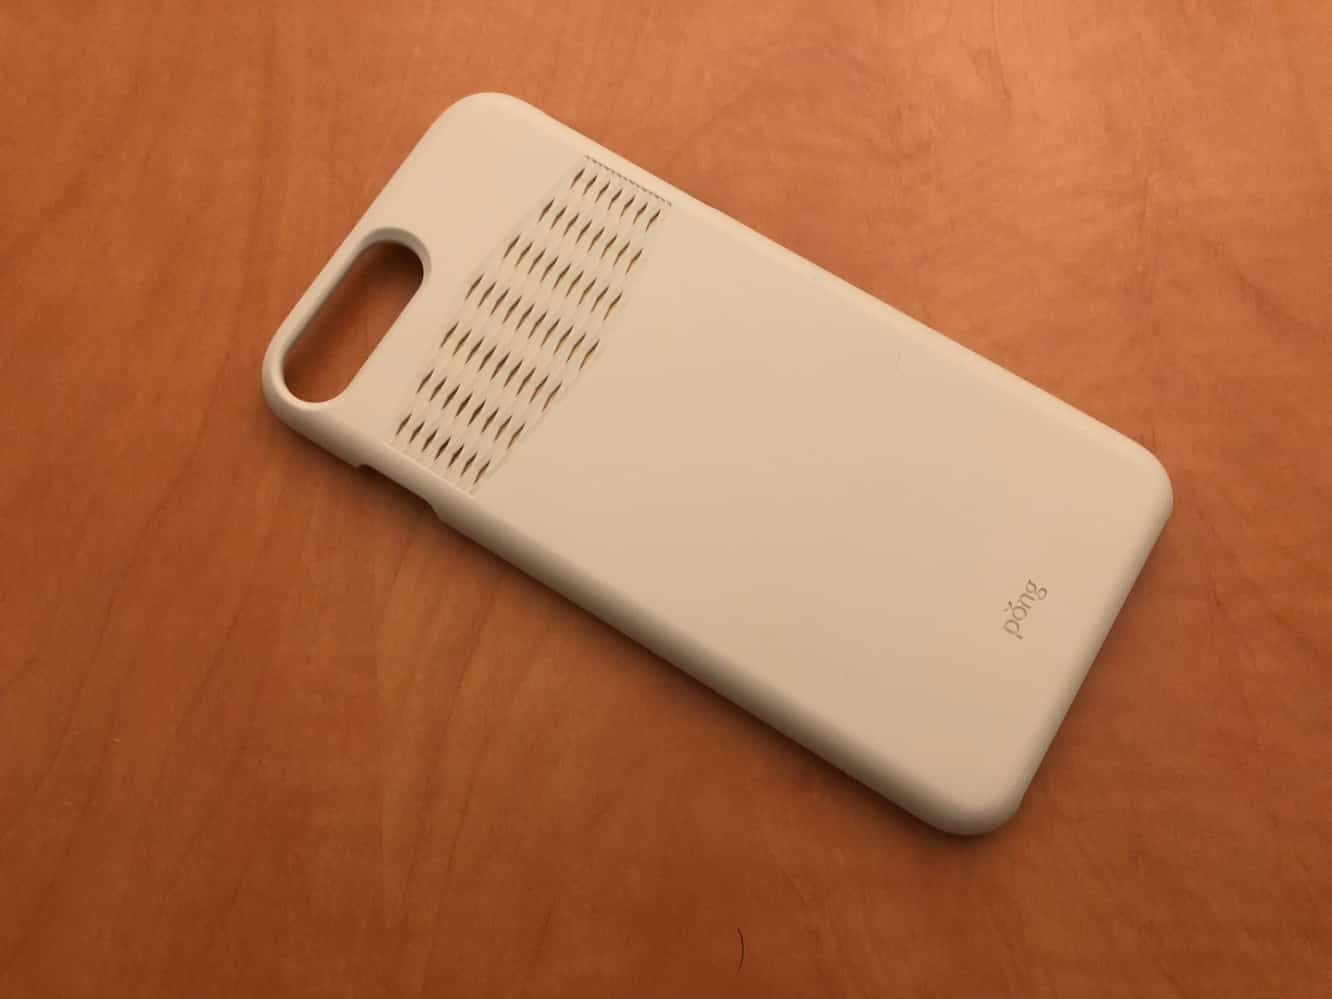 Pong Radiation Reduction Case for iPhone 7 Plus